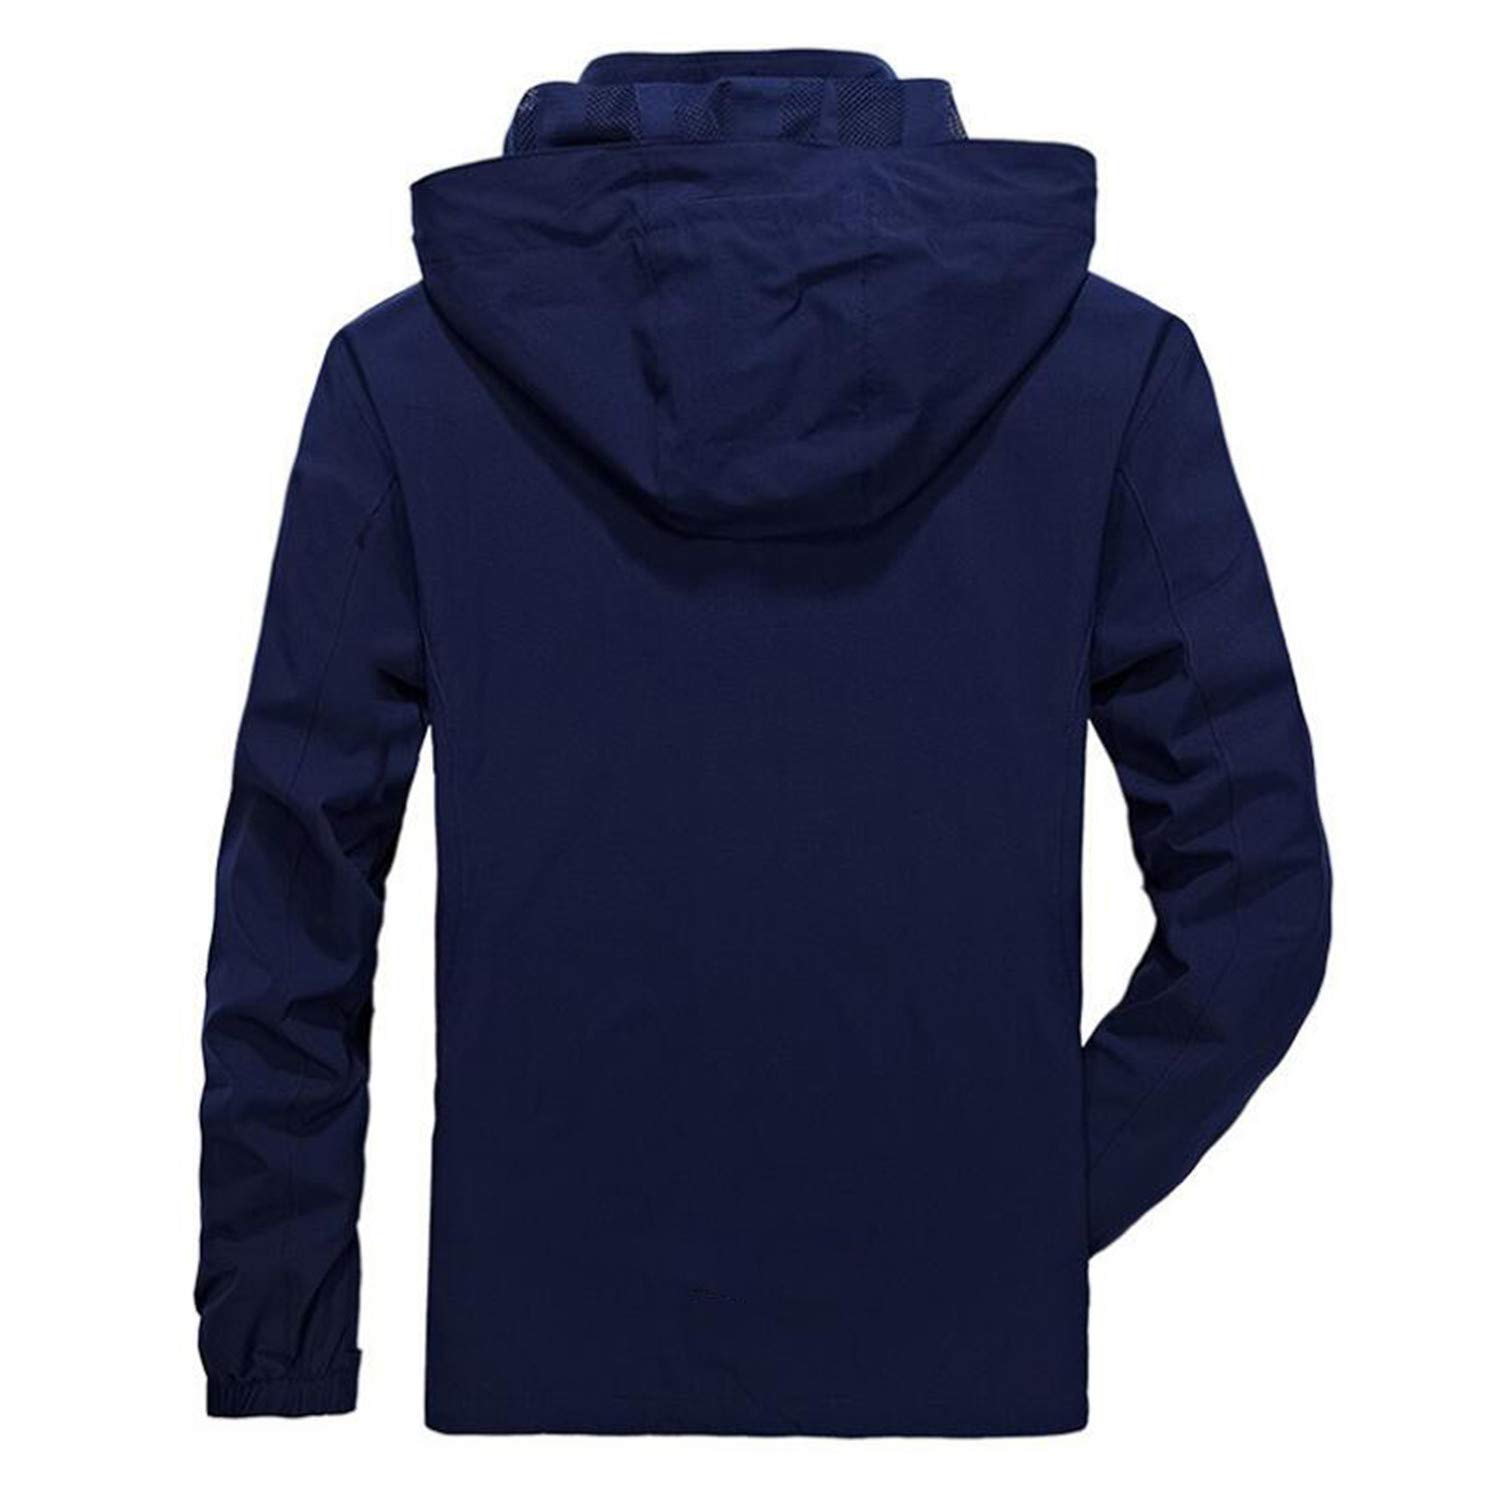 New Mens Autumn Jacket Casual Hooded Collar L-4XL Quick ...